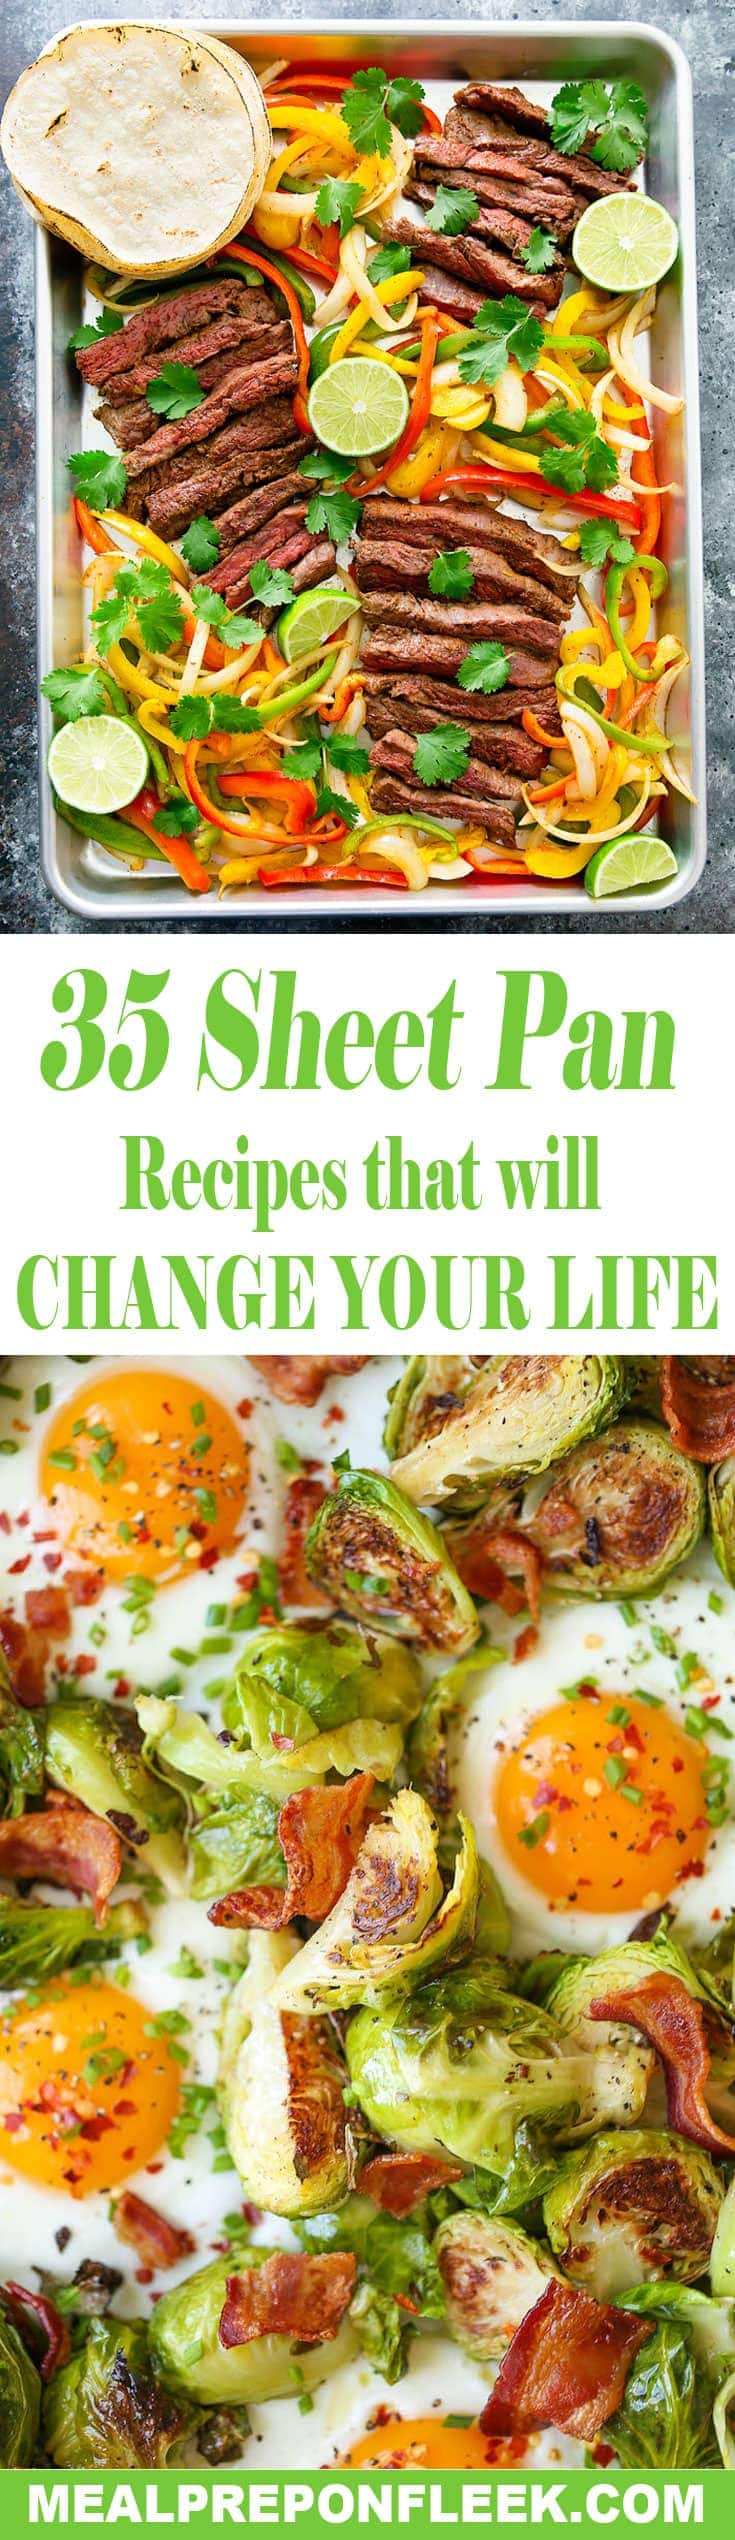 sheet pan recipes that will change your life